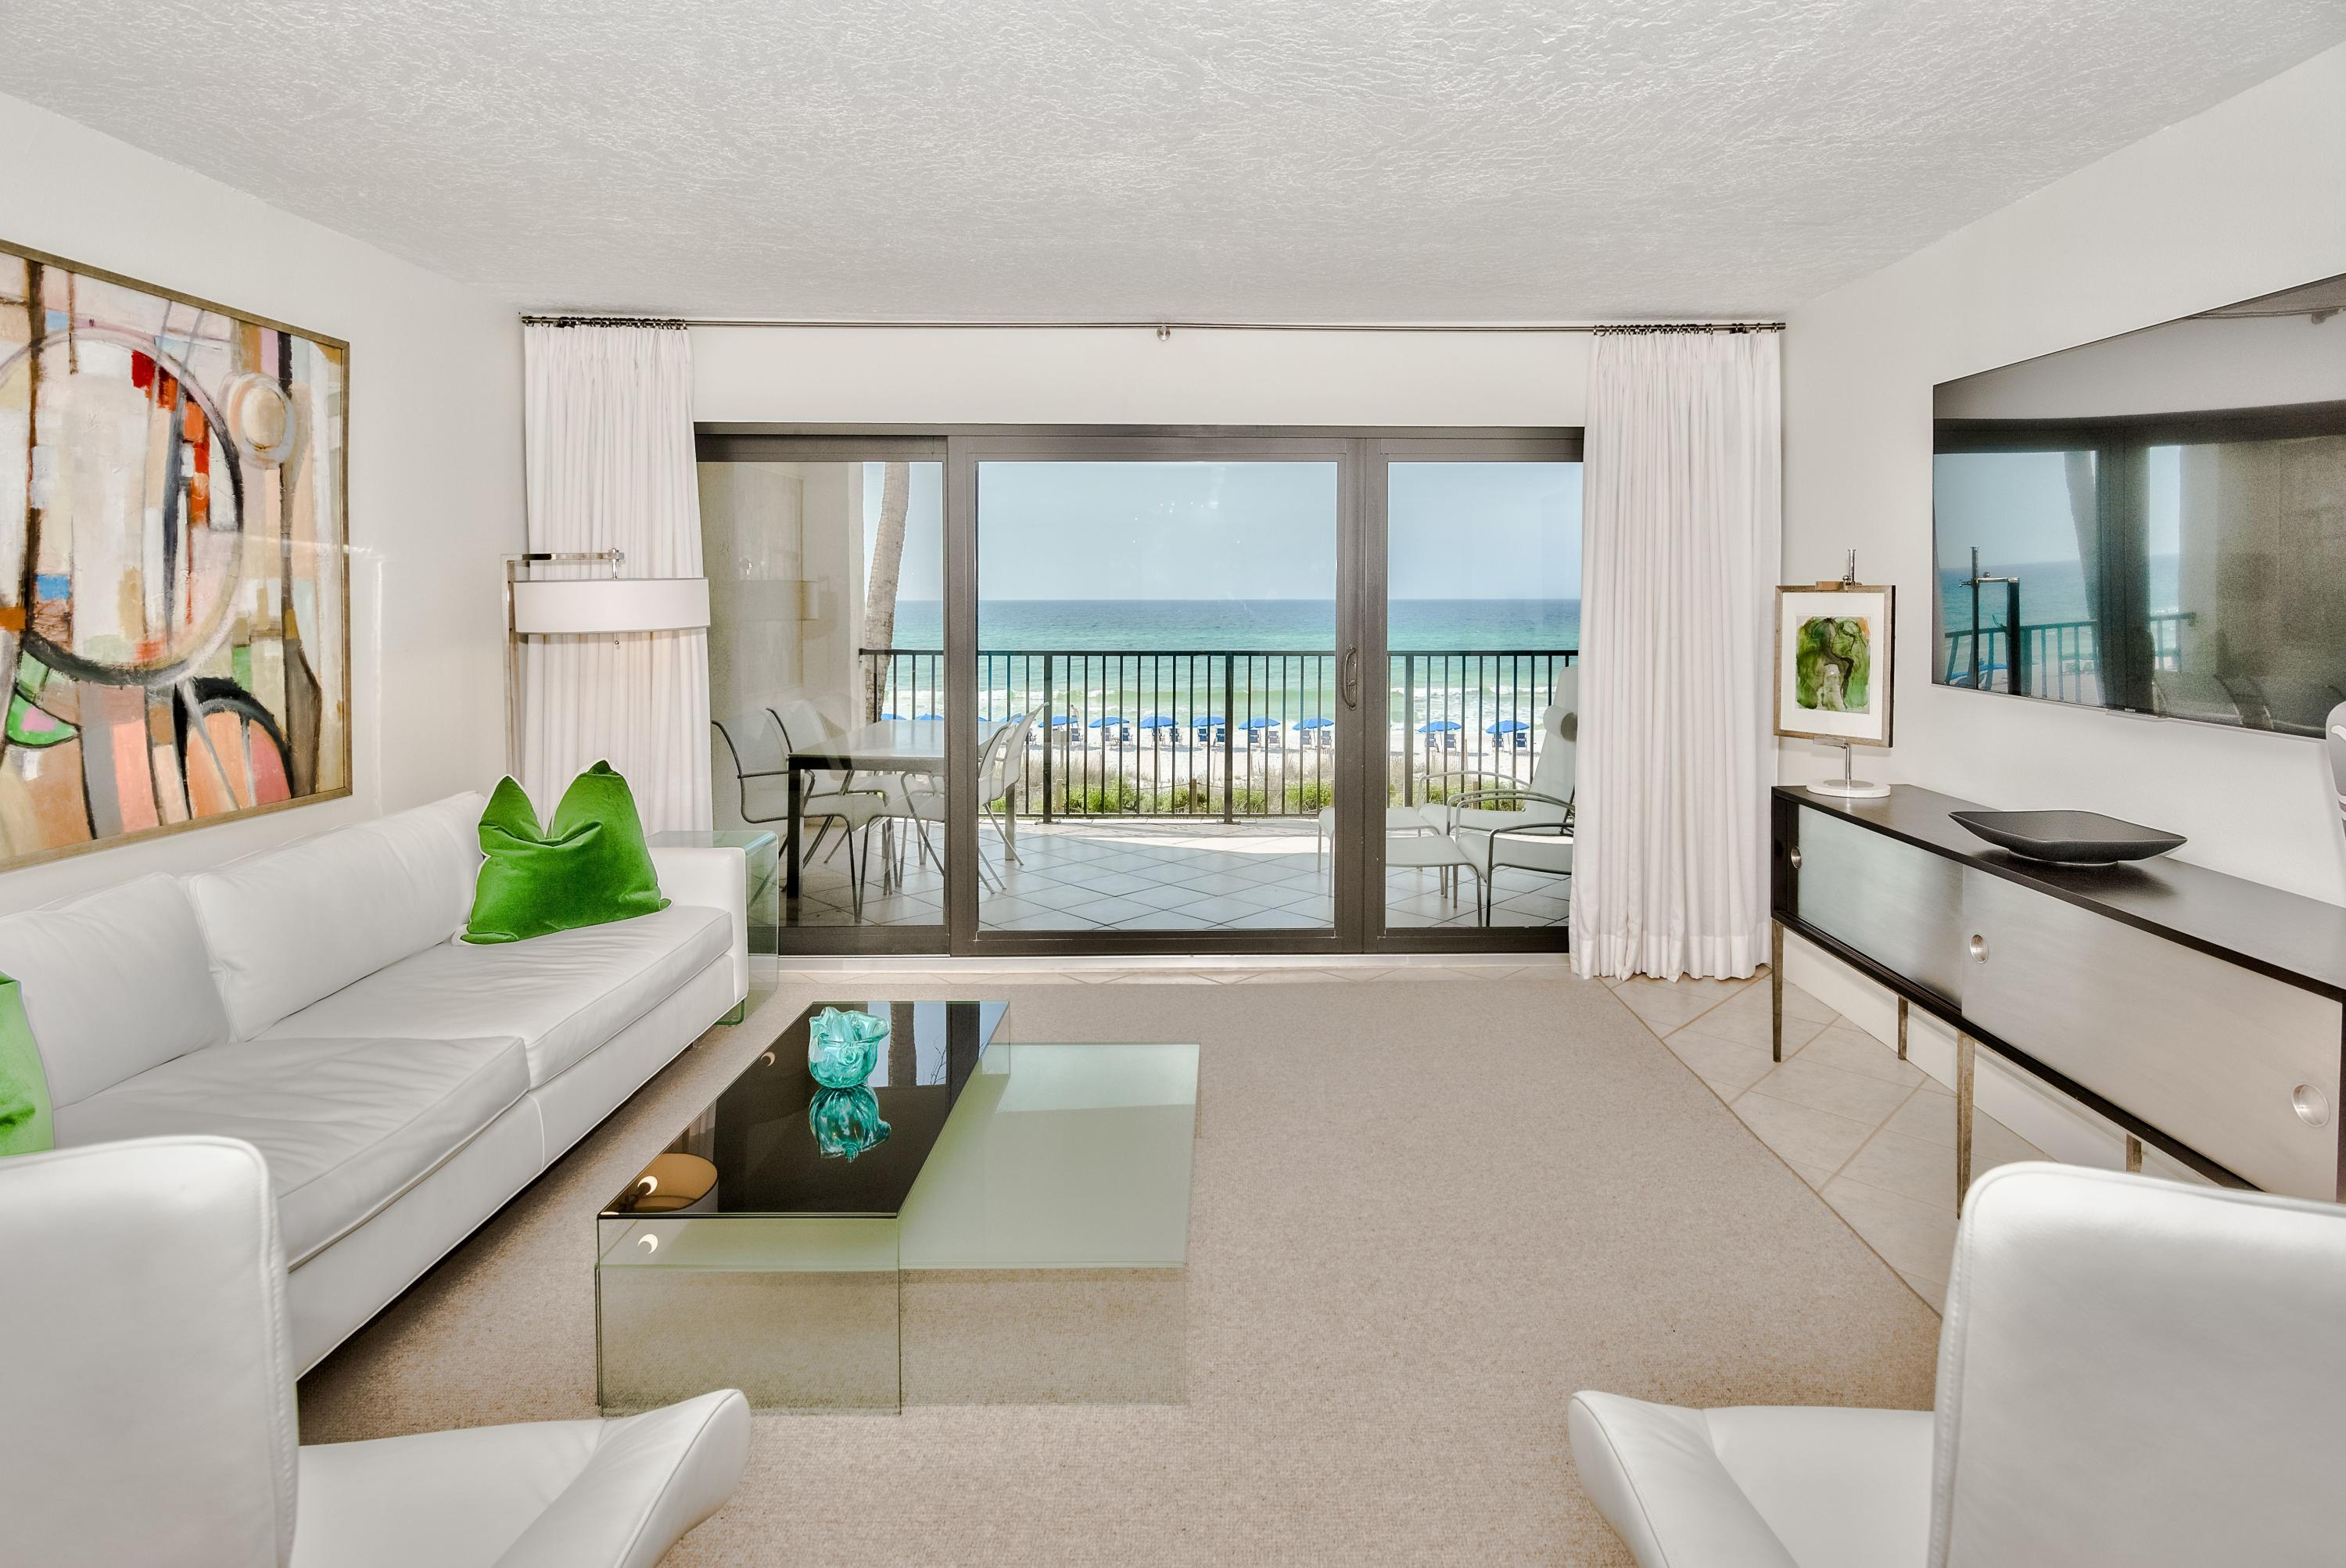 This immaculate unit has modern touches but still welcomes you to the beach from the moment you walk in the door.  High end finishes throughout and a master suite with a remarkable view.  Huntington by the Sea is peaceful and highly sought after complex for a reason.  It's gated privacy and low density vibe are just a couple reasons these units don't sit around for sale long.